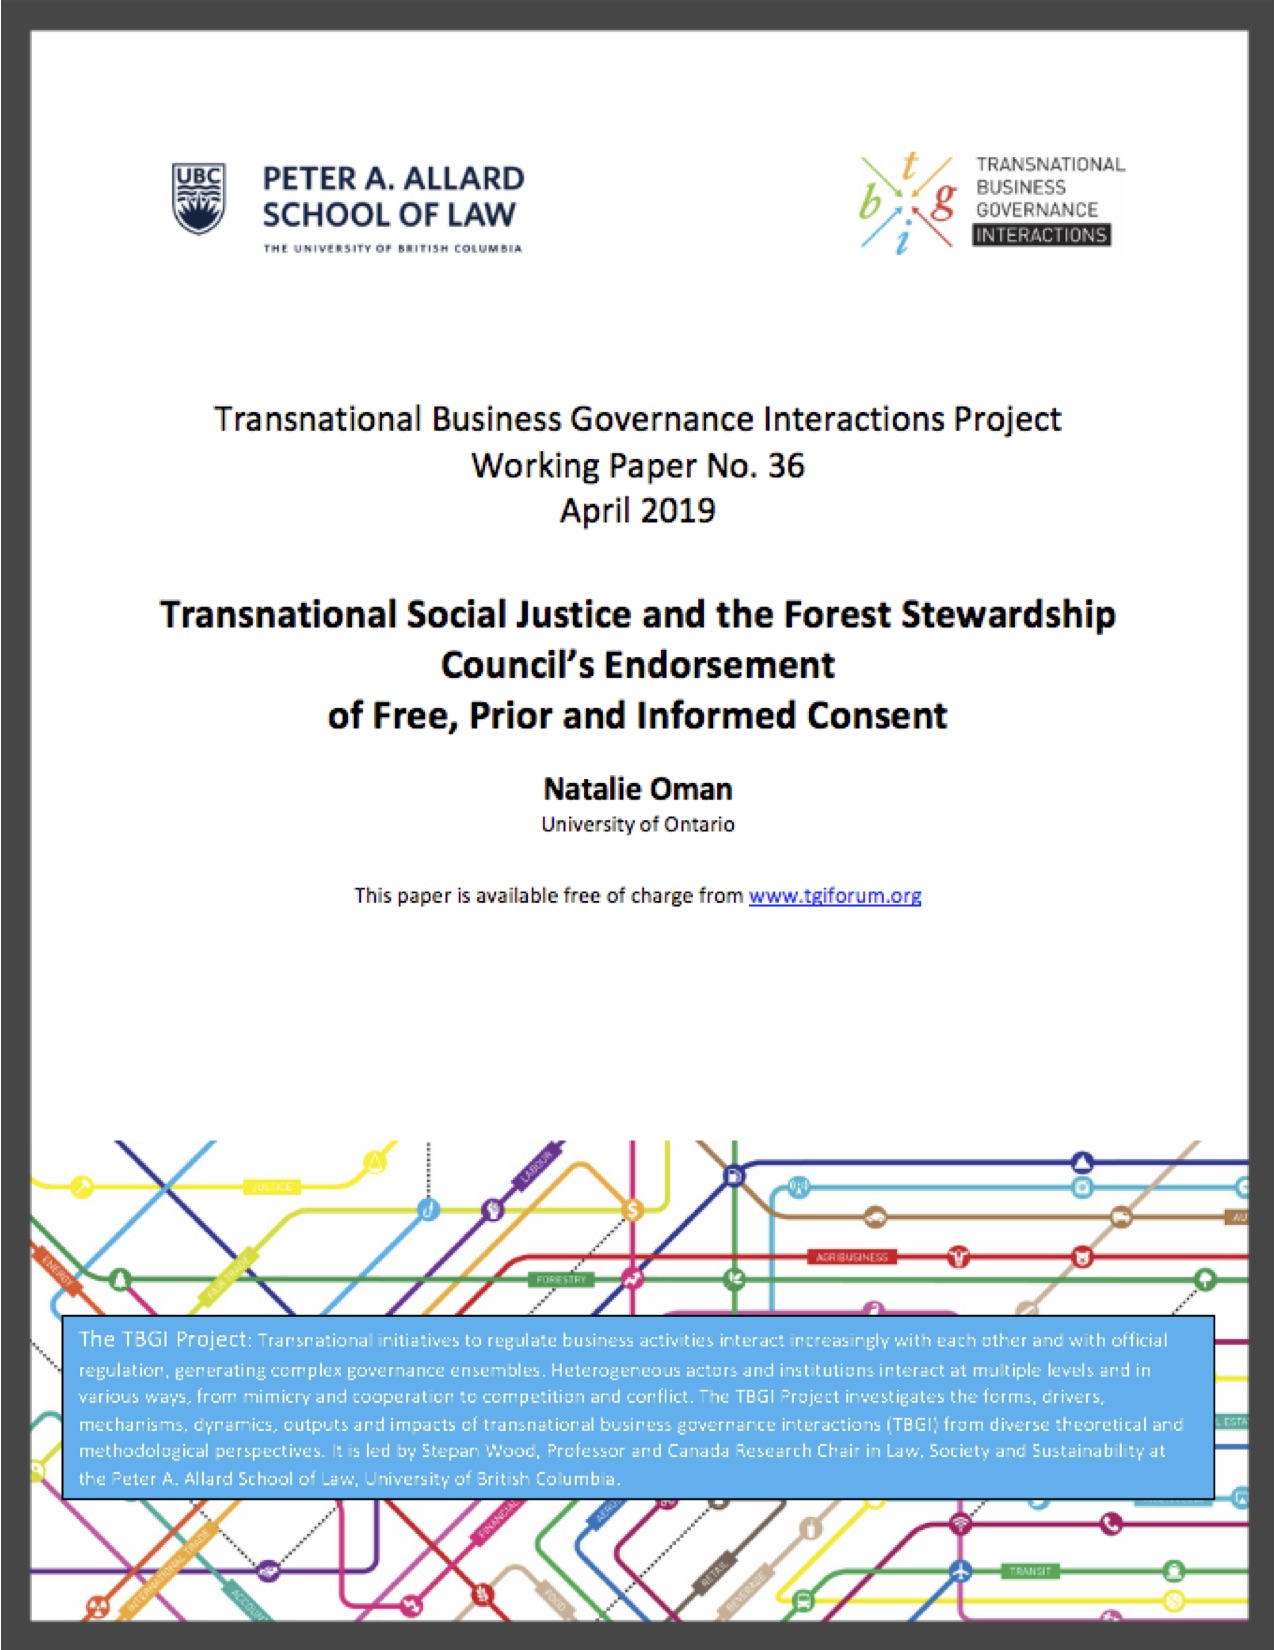 Oman (2019) Transnational Social Justice and the Forestry Stewardship Council's Endorsement of Free, Prior, and Informed Consent